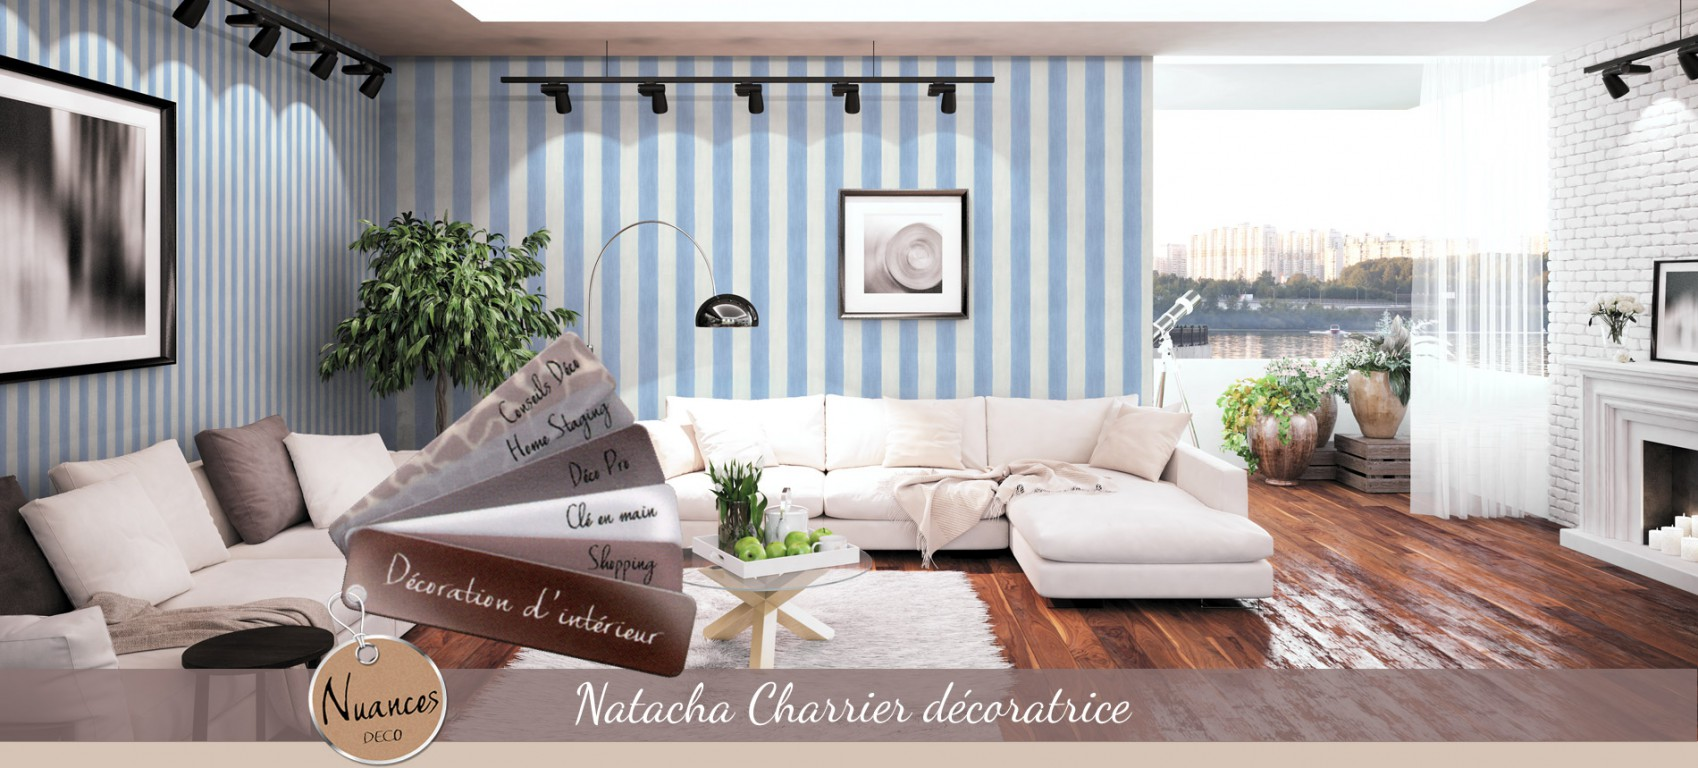 d coratrice d 39 int rieur meaux natacha charrier. Black Bedroom Furniture Sets. Home Design Ideas